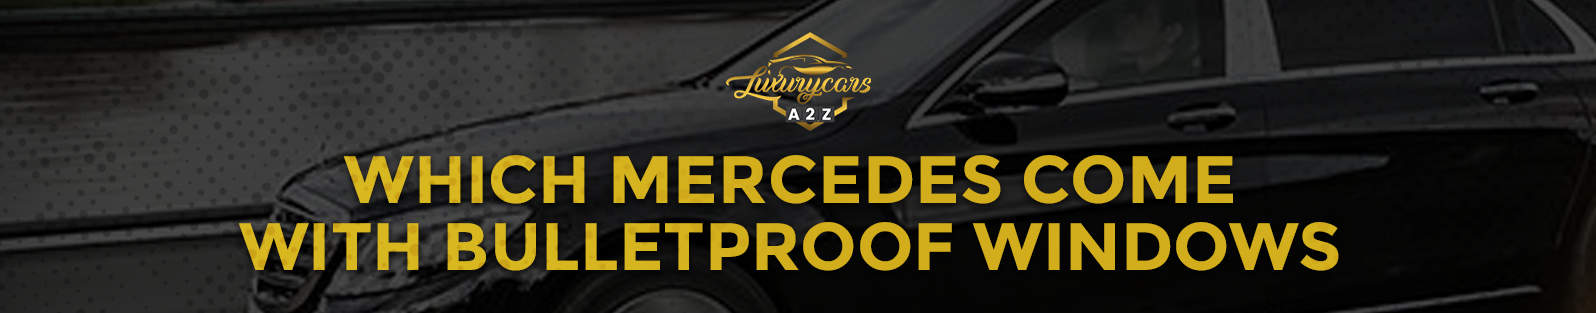 Which Mercedes come with bulletproof windows?